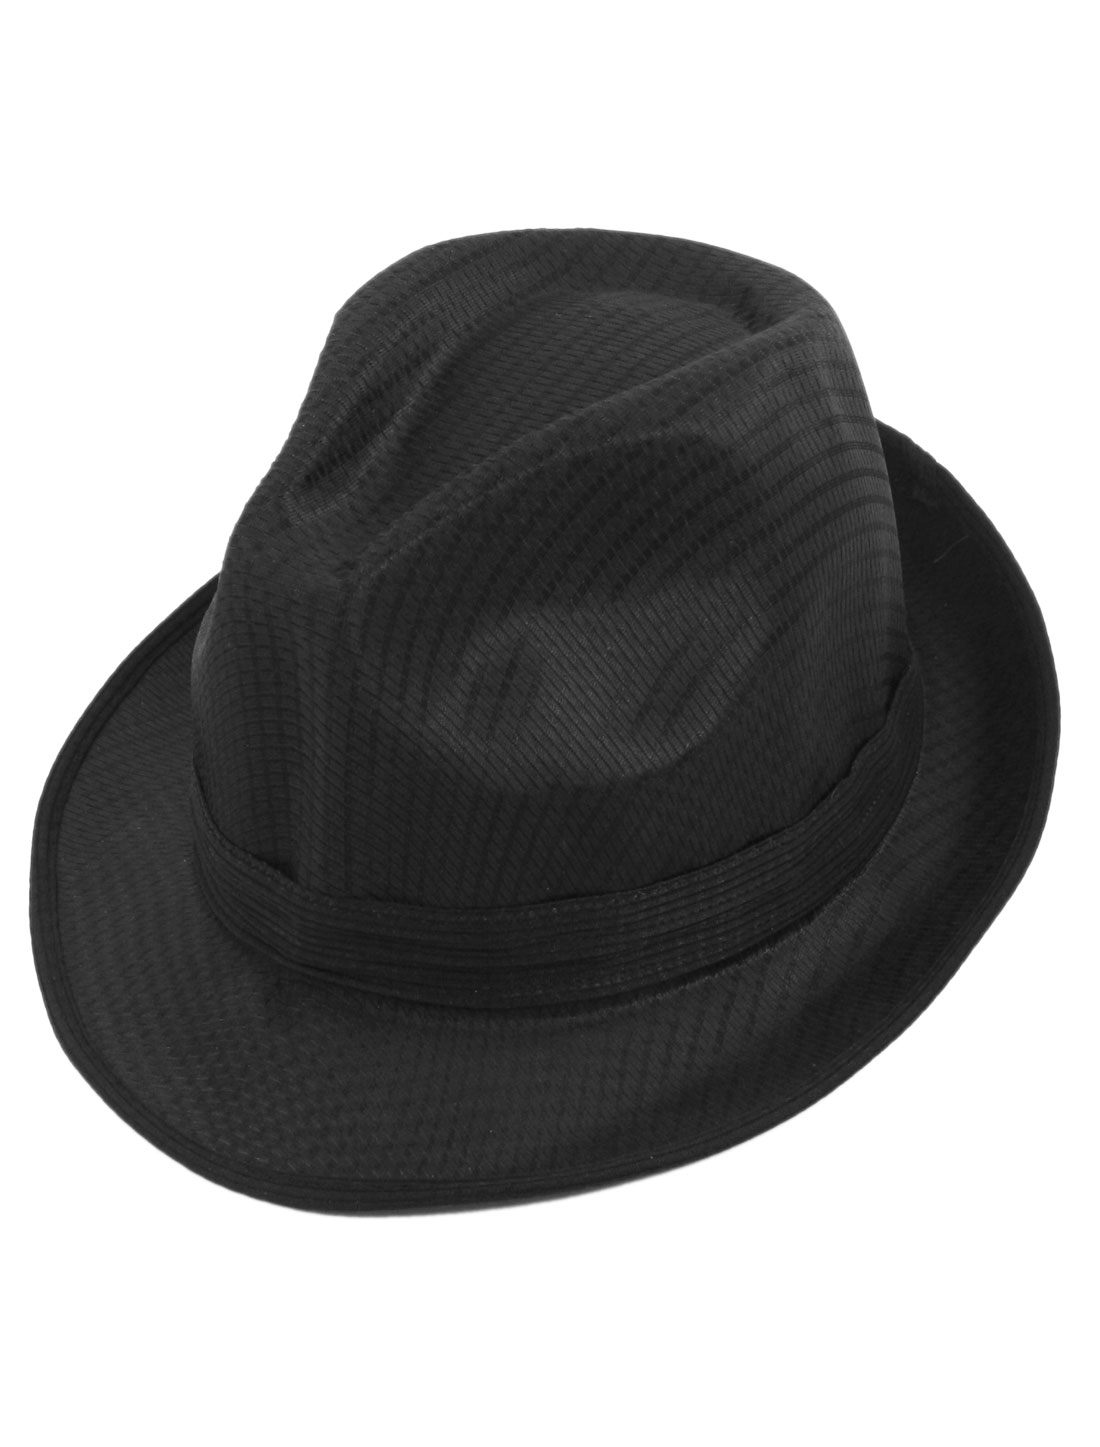 Black Lined Polyester Band Decor Homburg Fedora Hat for Man